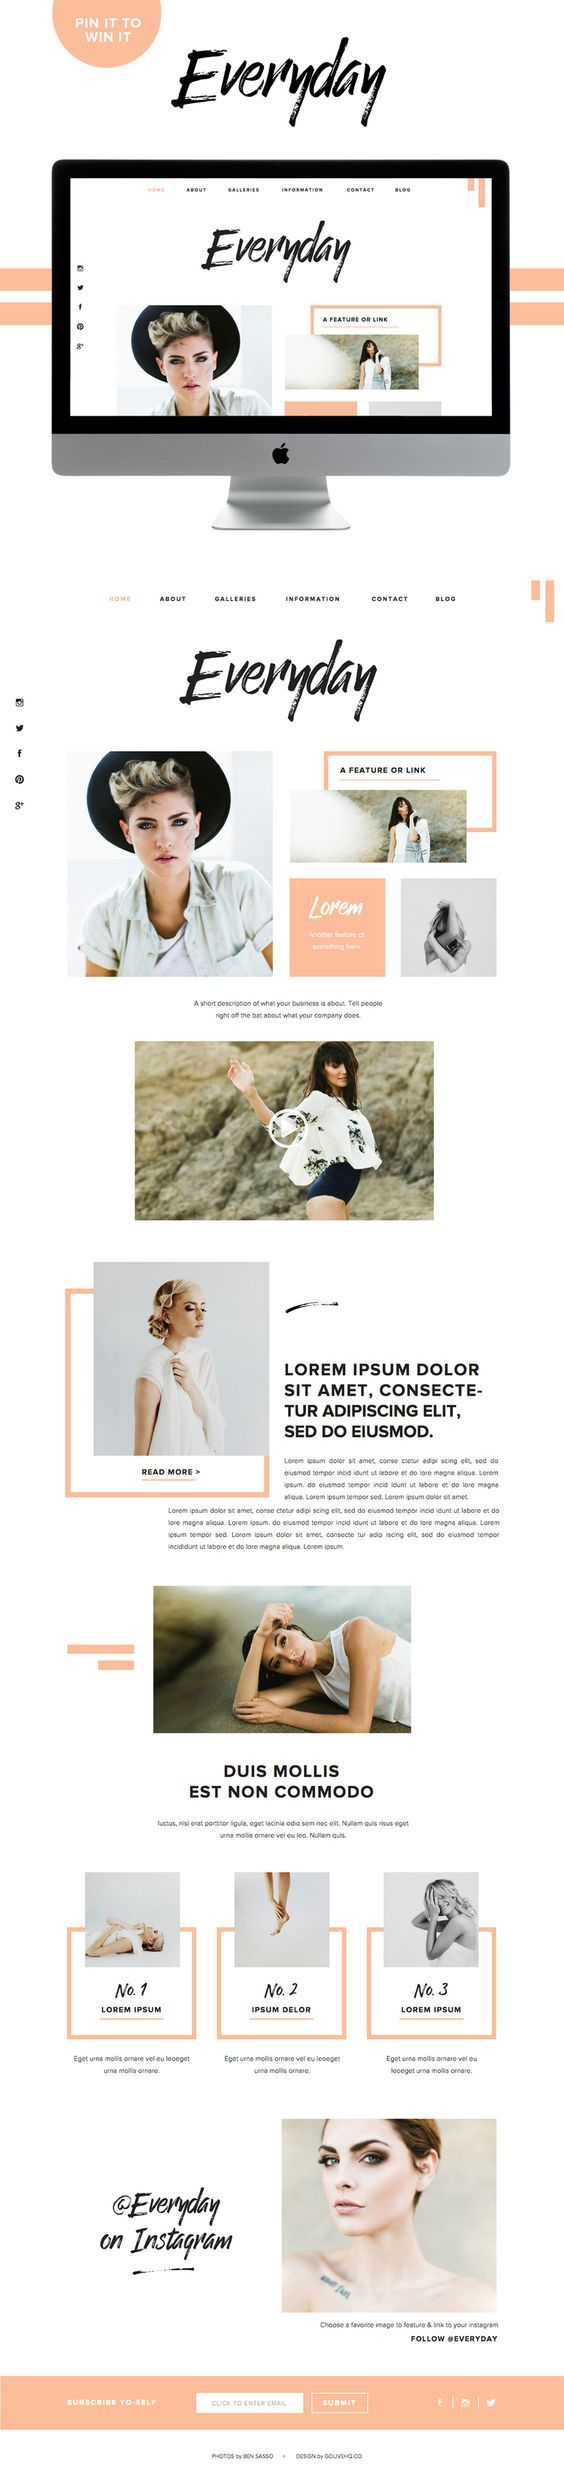 I love every last one of the their new Showit 5 designs! I can't believe I'm just now hearing about Showit. To win any of these designs would be a blessing. || modern website showit5 inspiration | BY GOLIVEHQ.CO